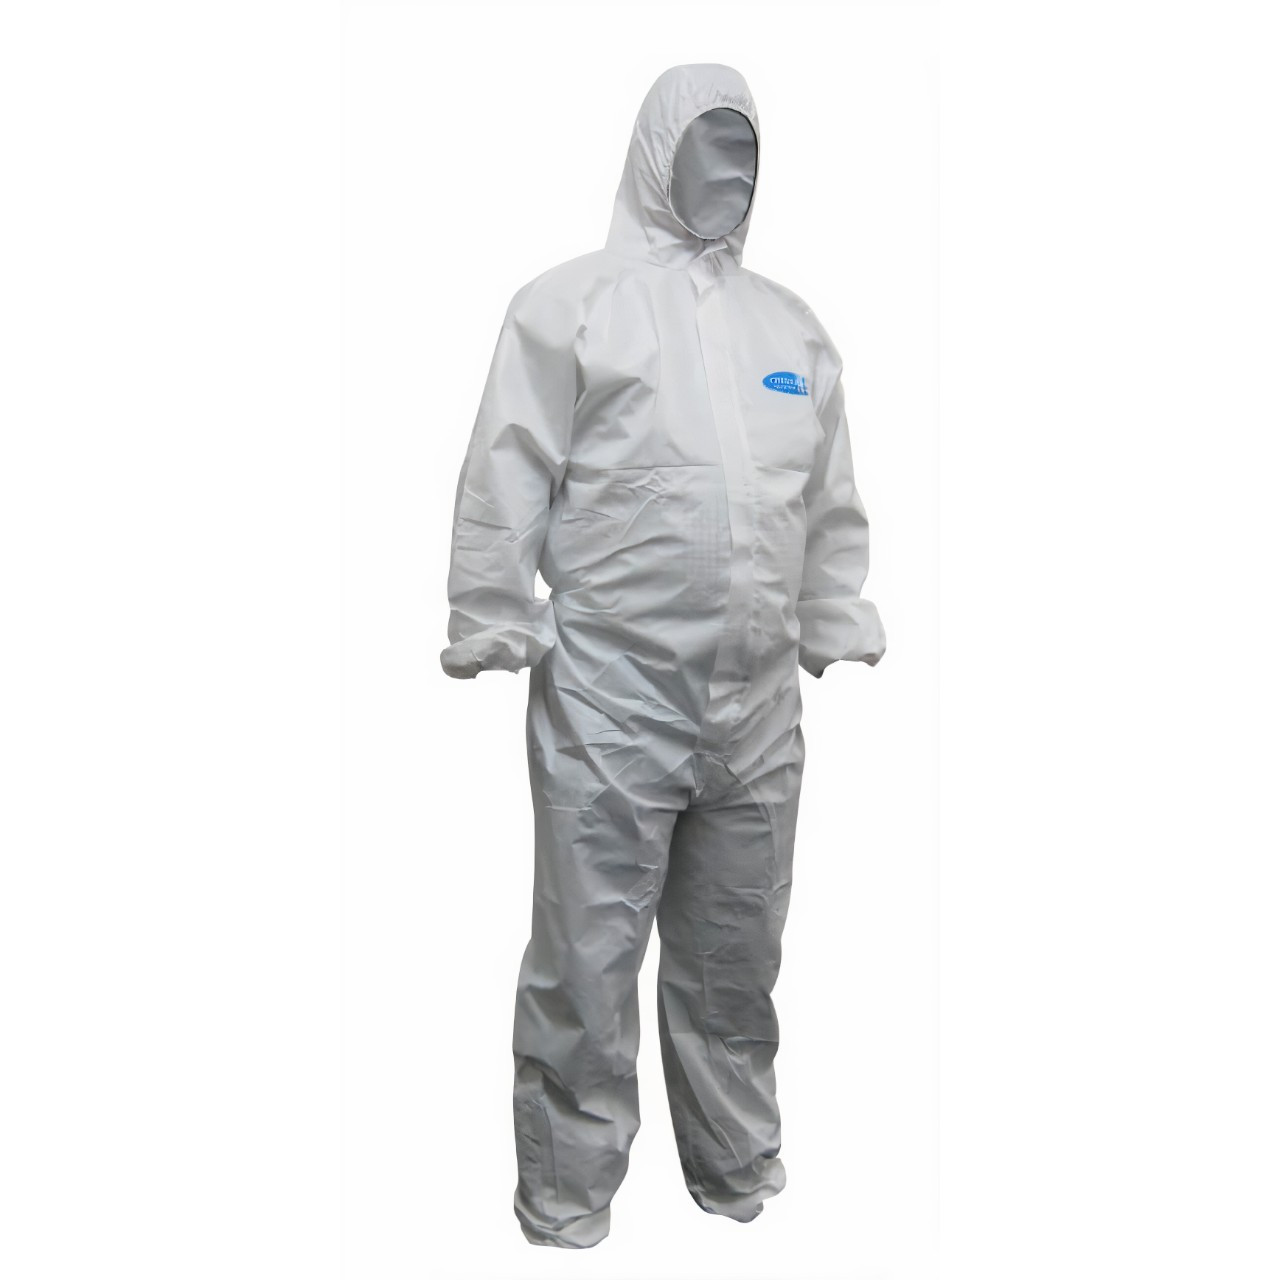 Chemguard T5/6 White SMS Disposable Coveralls 2XL